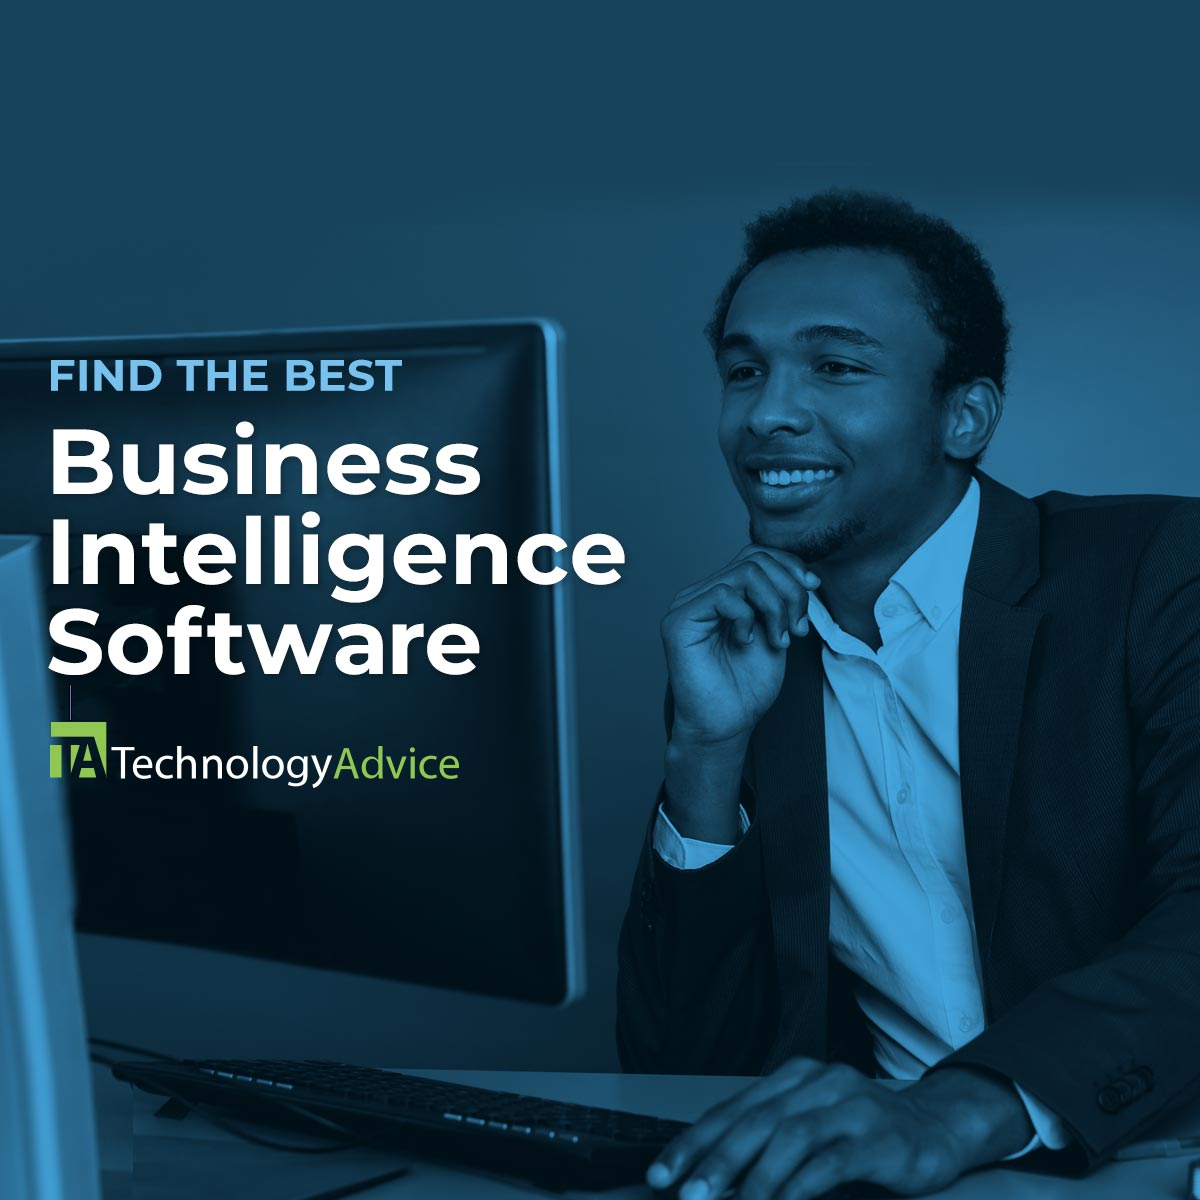 Managers savvy business guide intelligence pdf the